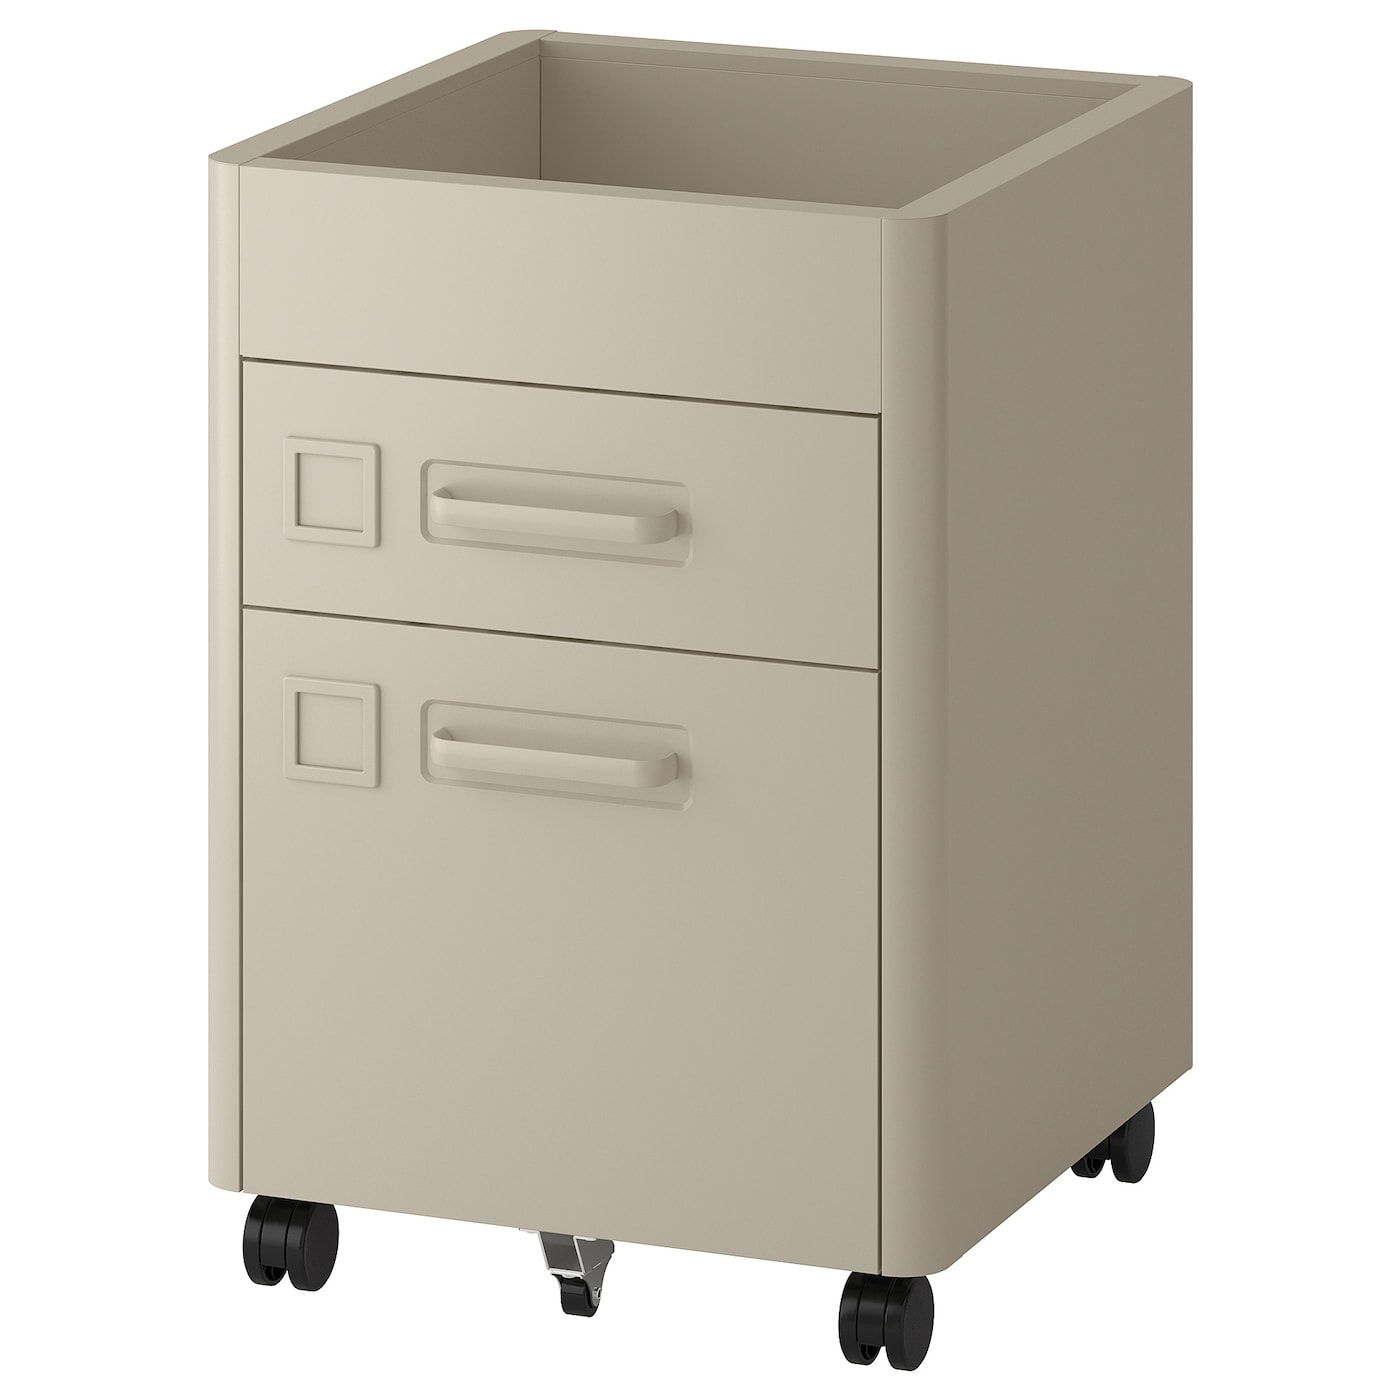 IKEA IDÅSEN drawer unit on castors Integrated damper closes the drawer silently and gently.